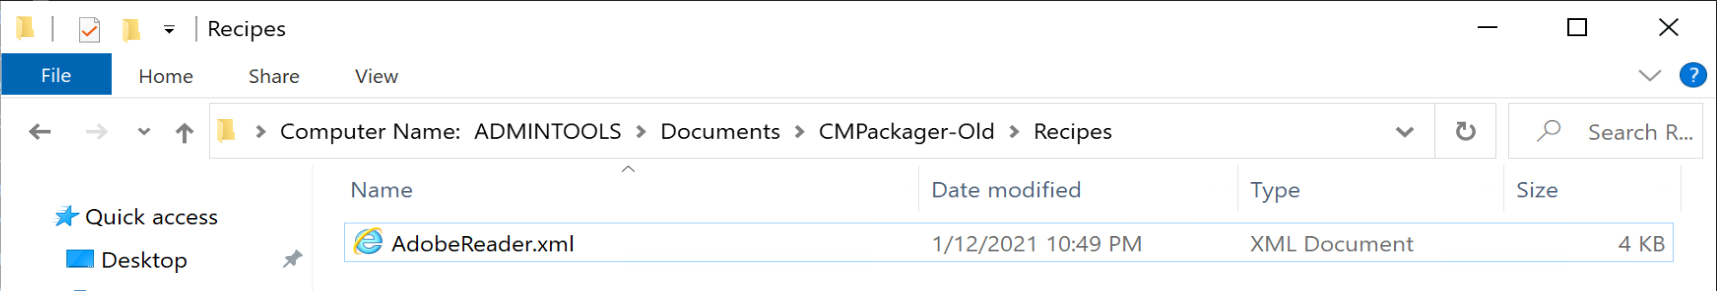 CM Packager 06